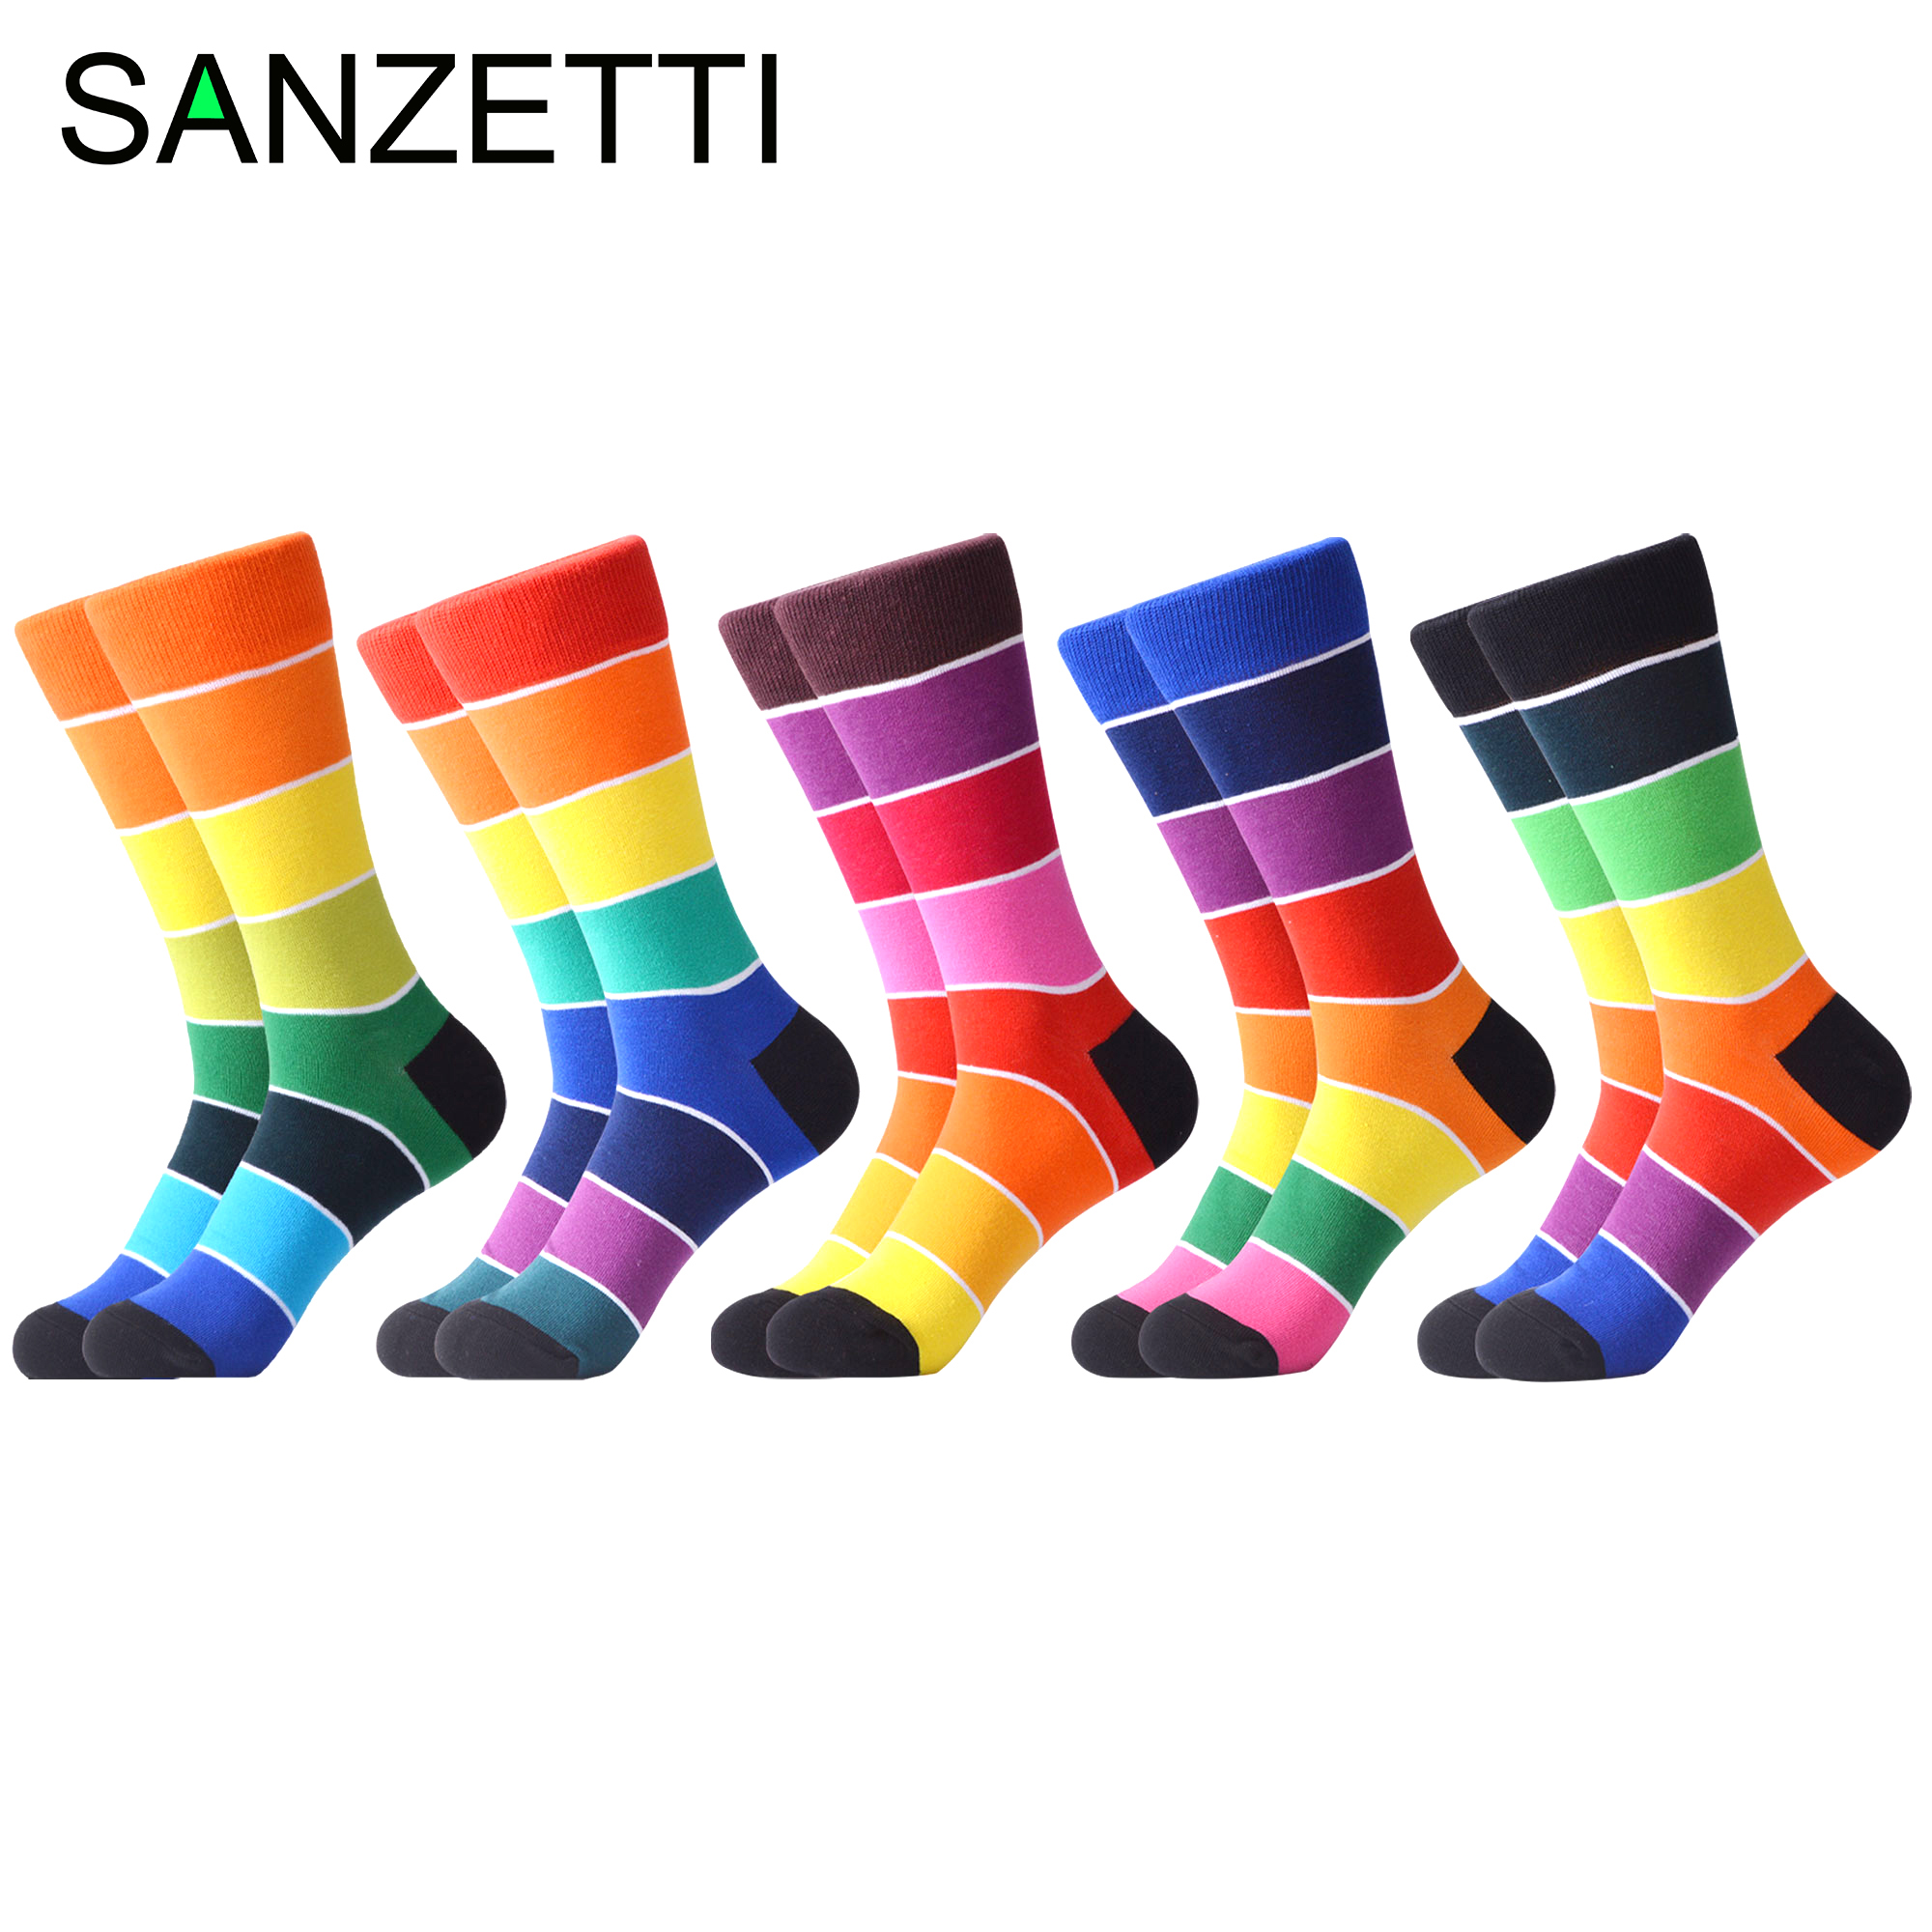 SANZETTI 1 Pair New Men's Casual Combed Cotton Colorful Rainbow Happy Socks Personality Funny Wedding Gifts Creative Dress Socks